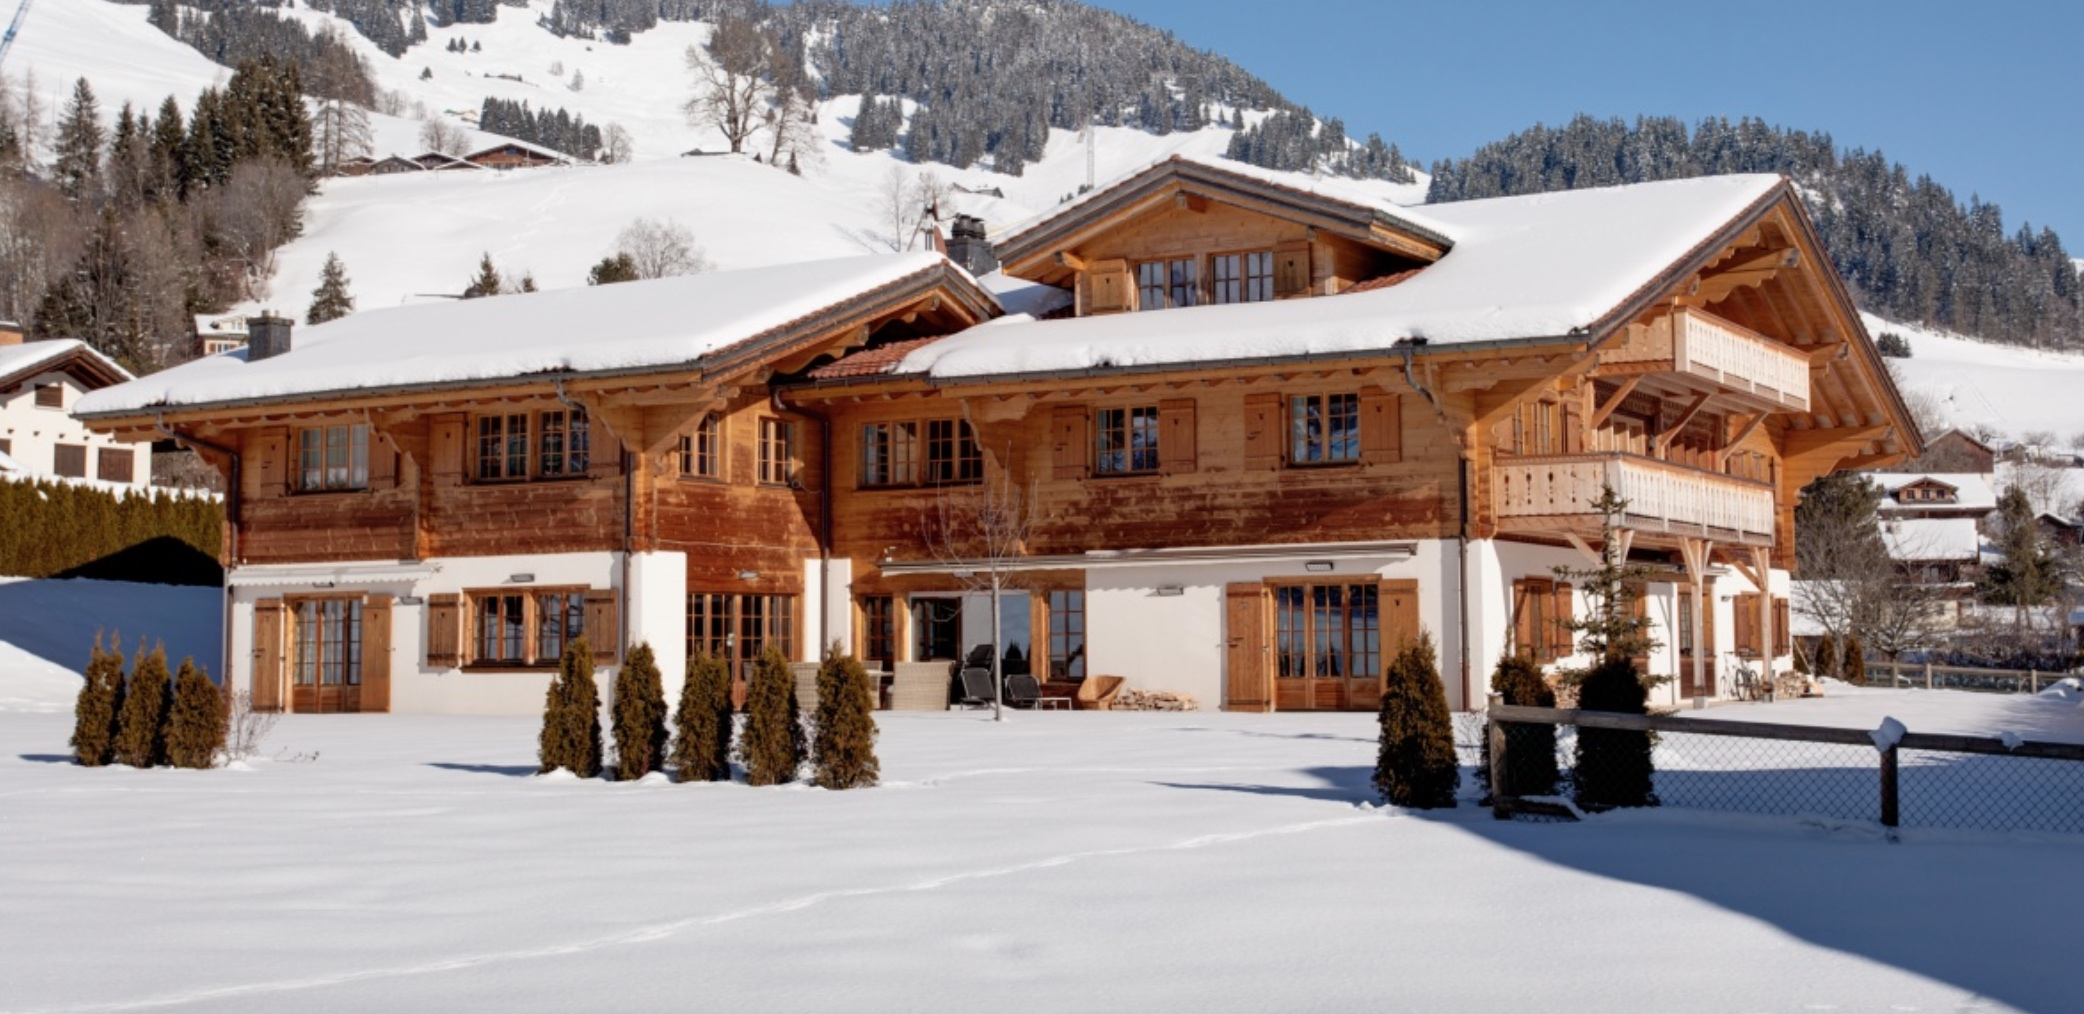 Images Of Luxury Real Estate Properties